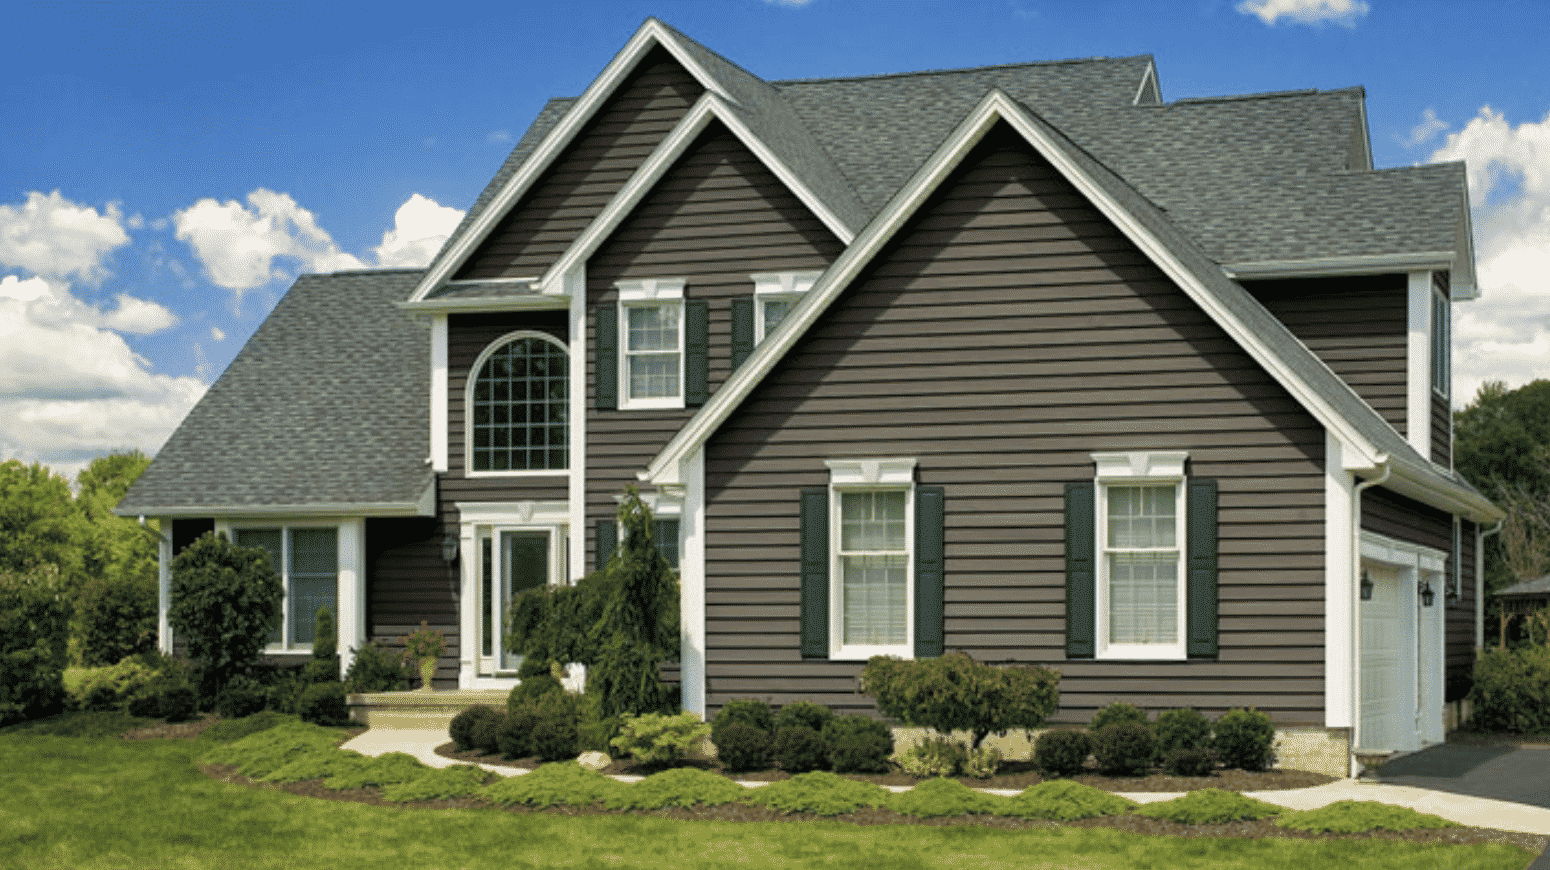 A Quick Overview Of Home Siding And What It Does